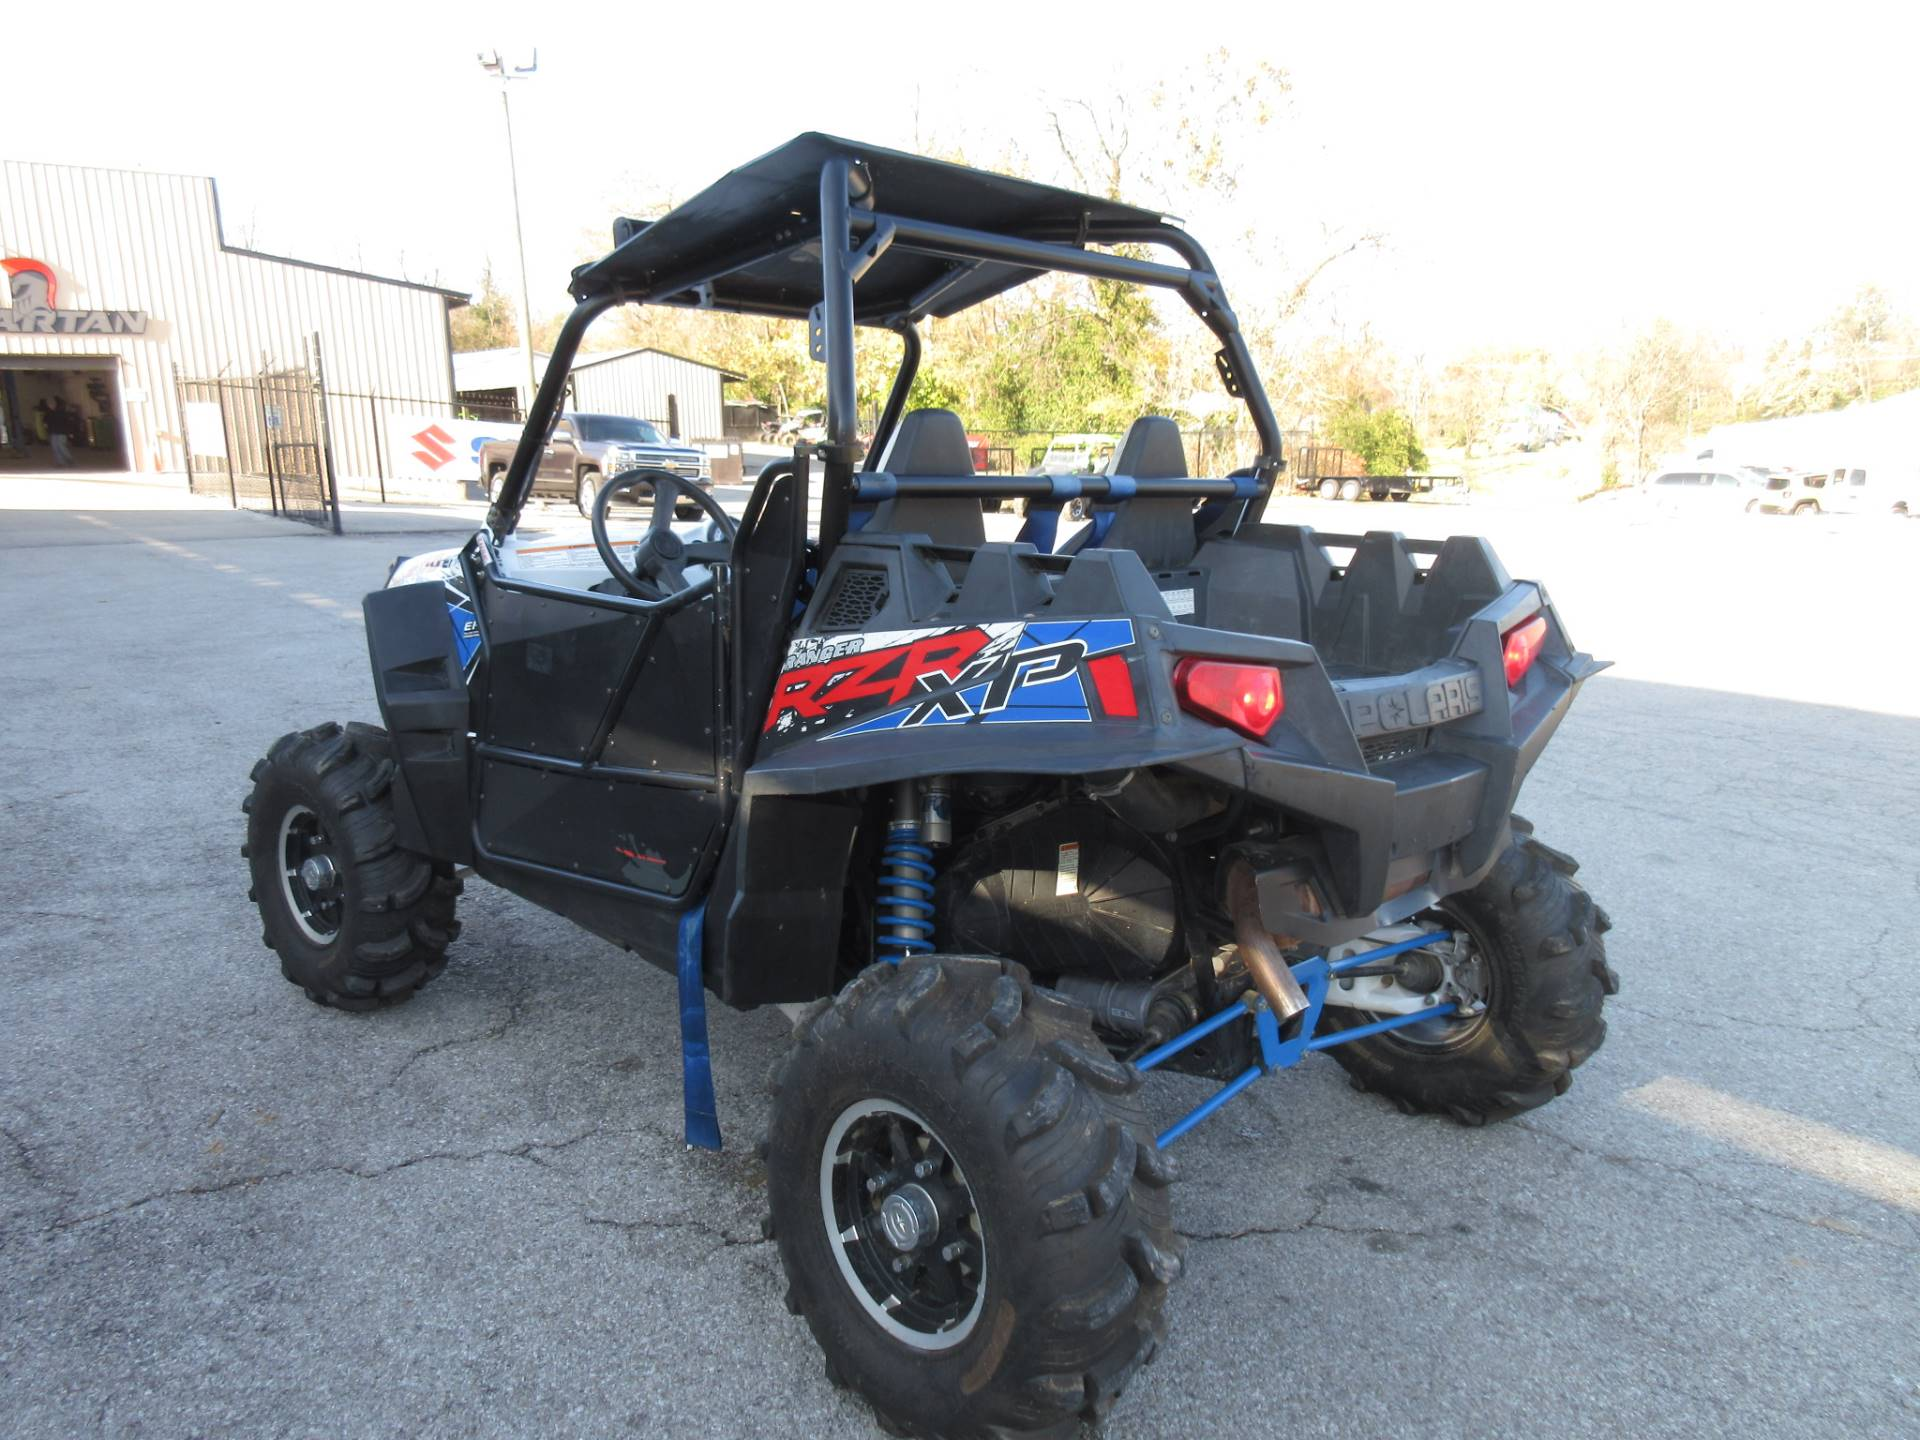 2012 Polaris Ranger RZR® XP 900 LE in Georgetown, Kentucky - Photo 4